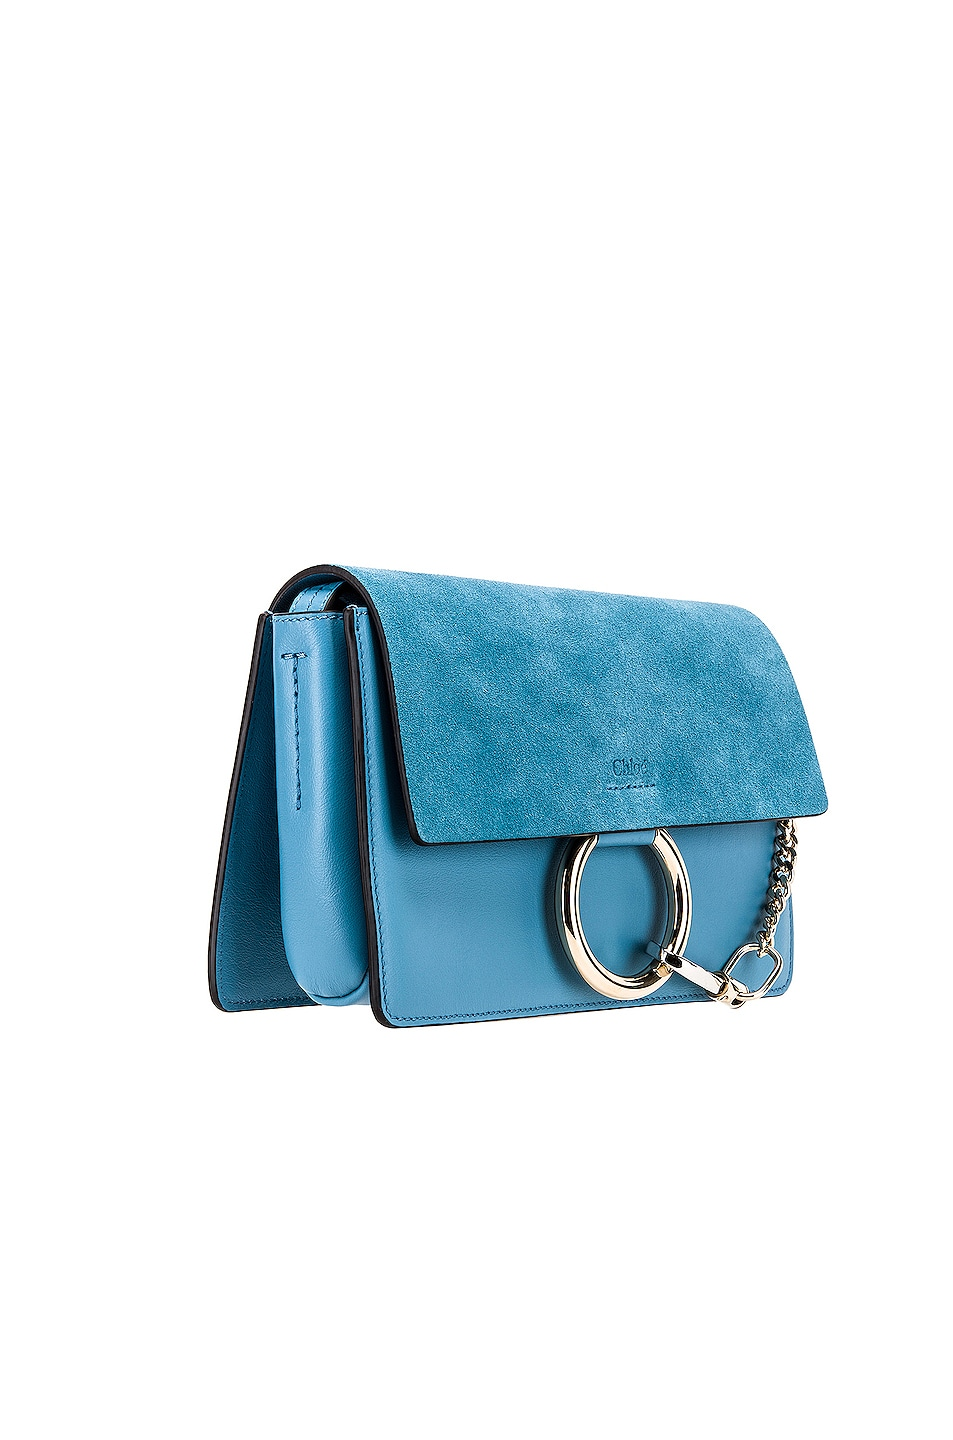 Image 4 of Chloe Small Faye Suede & Calfskin Shoulder Bag in Tomboy Blue